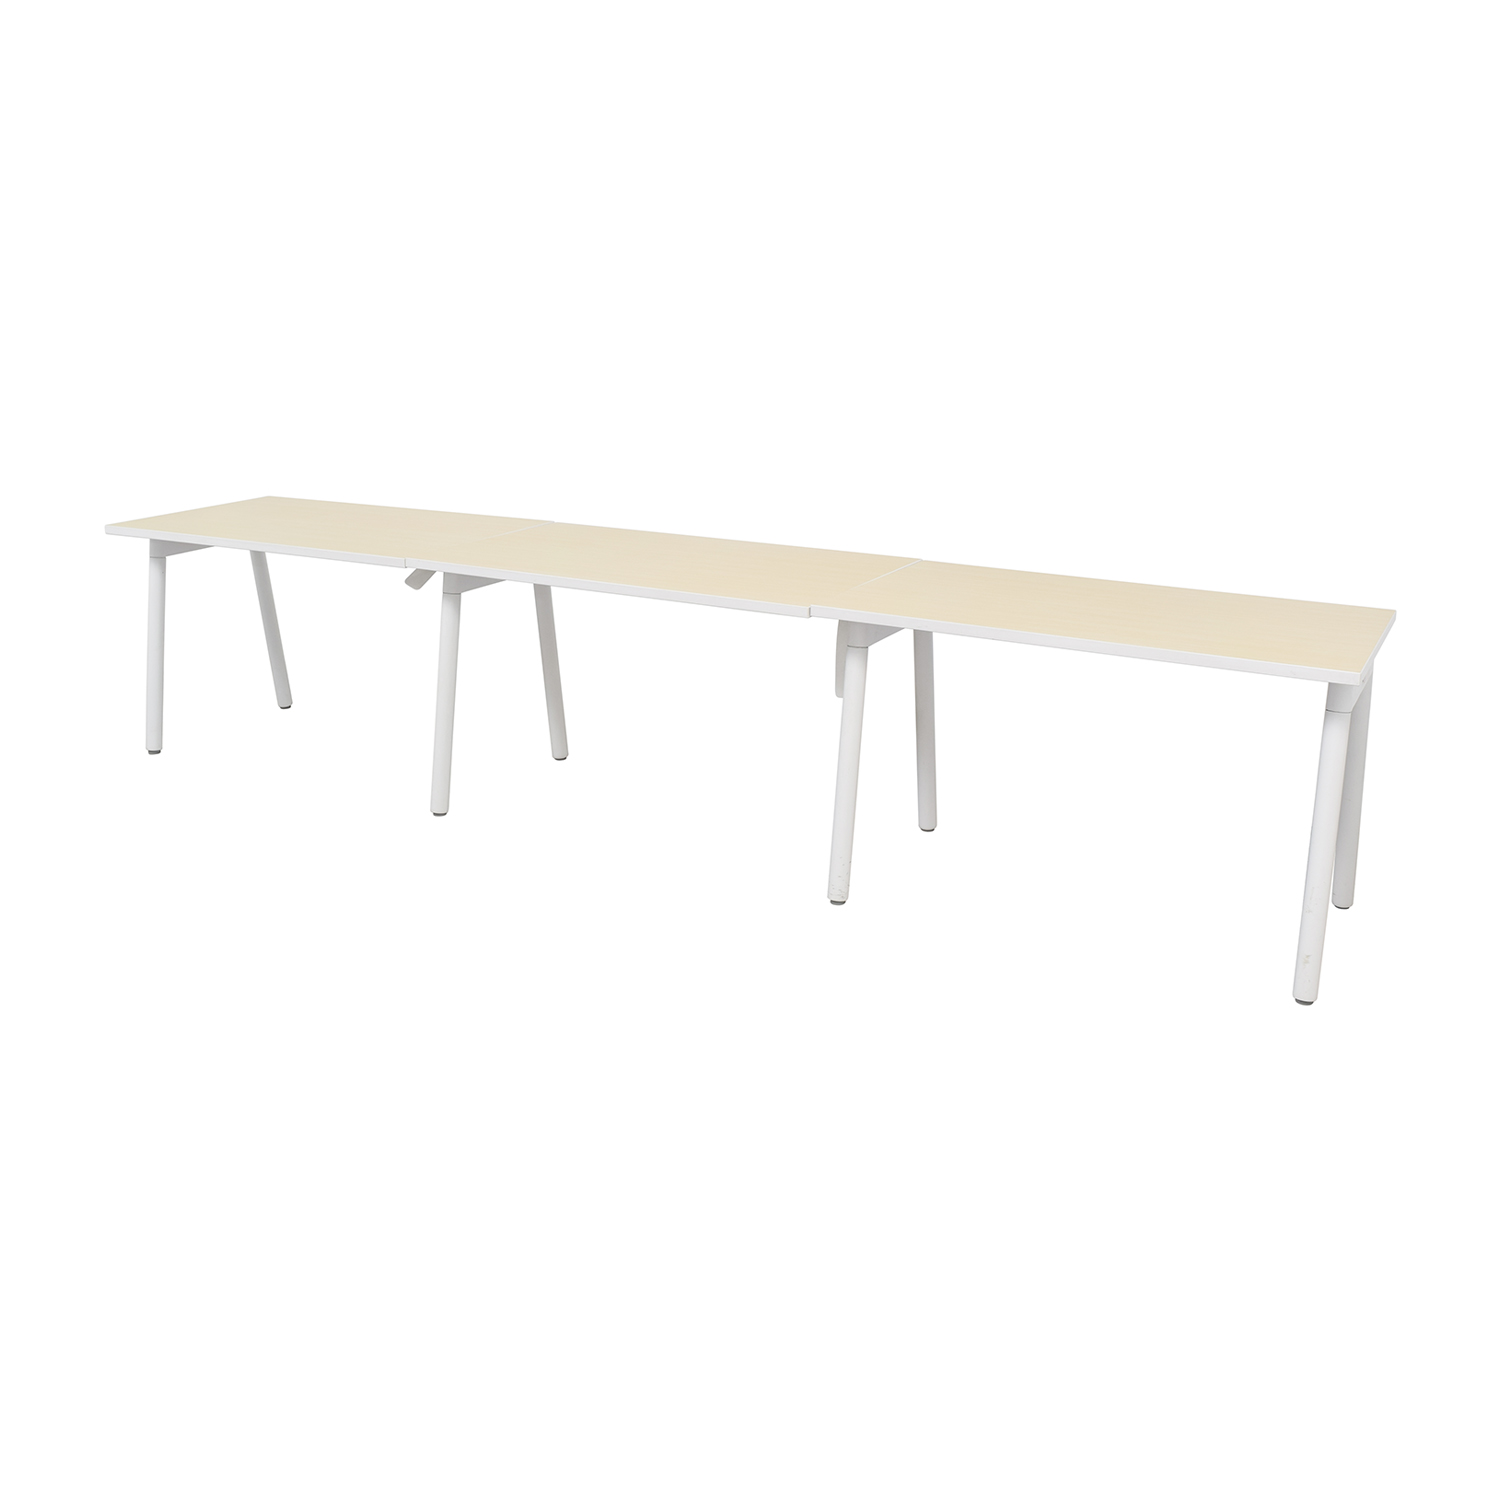 Poppin White and Natural Office Desk / Tables